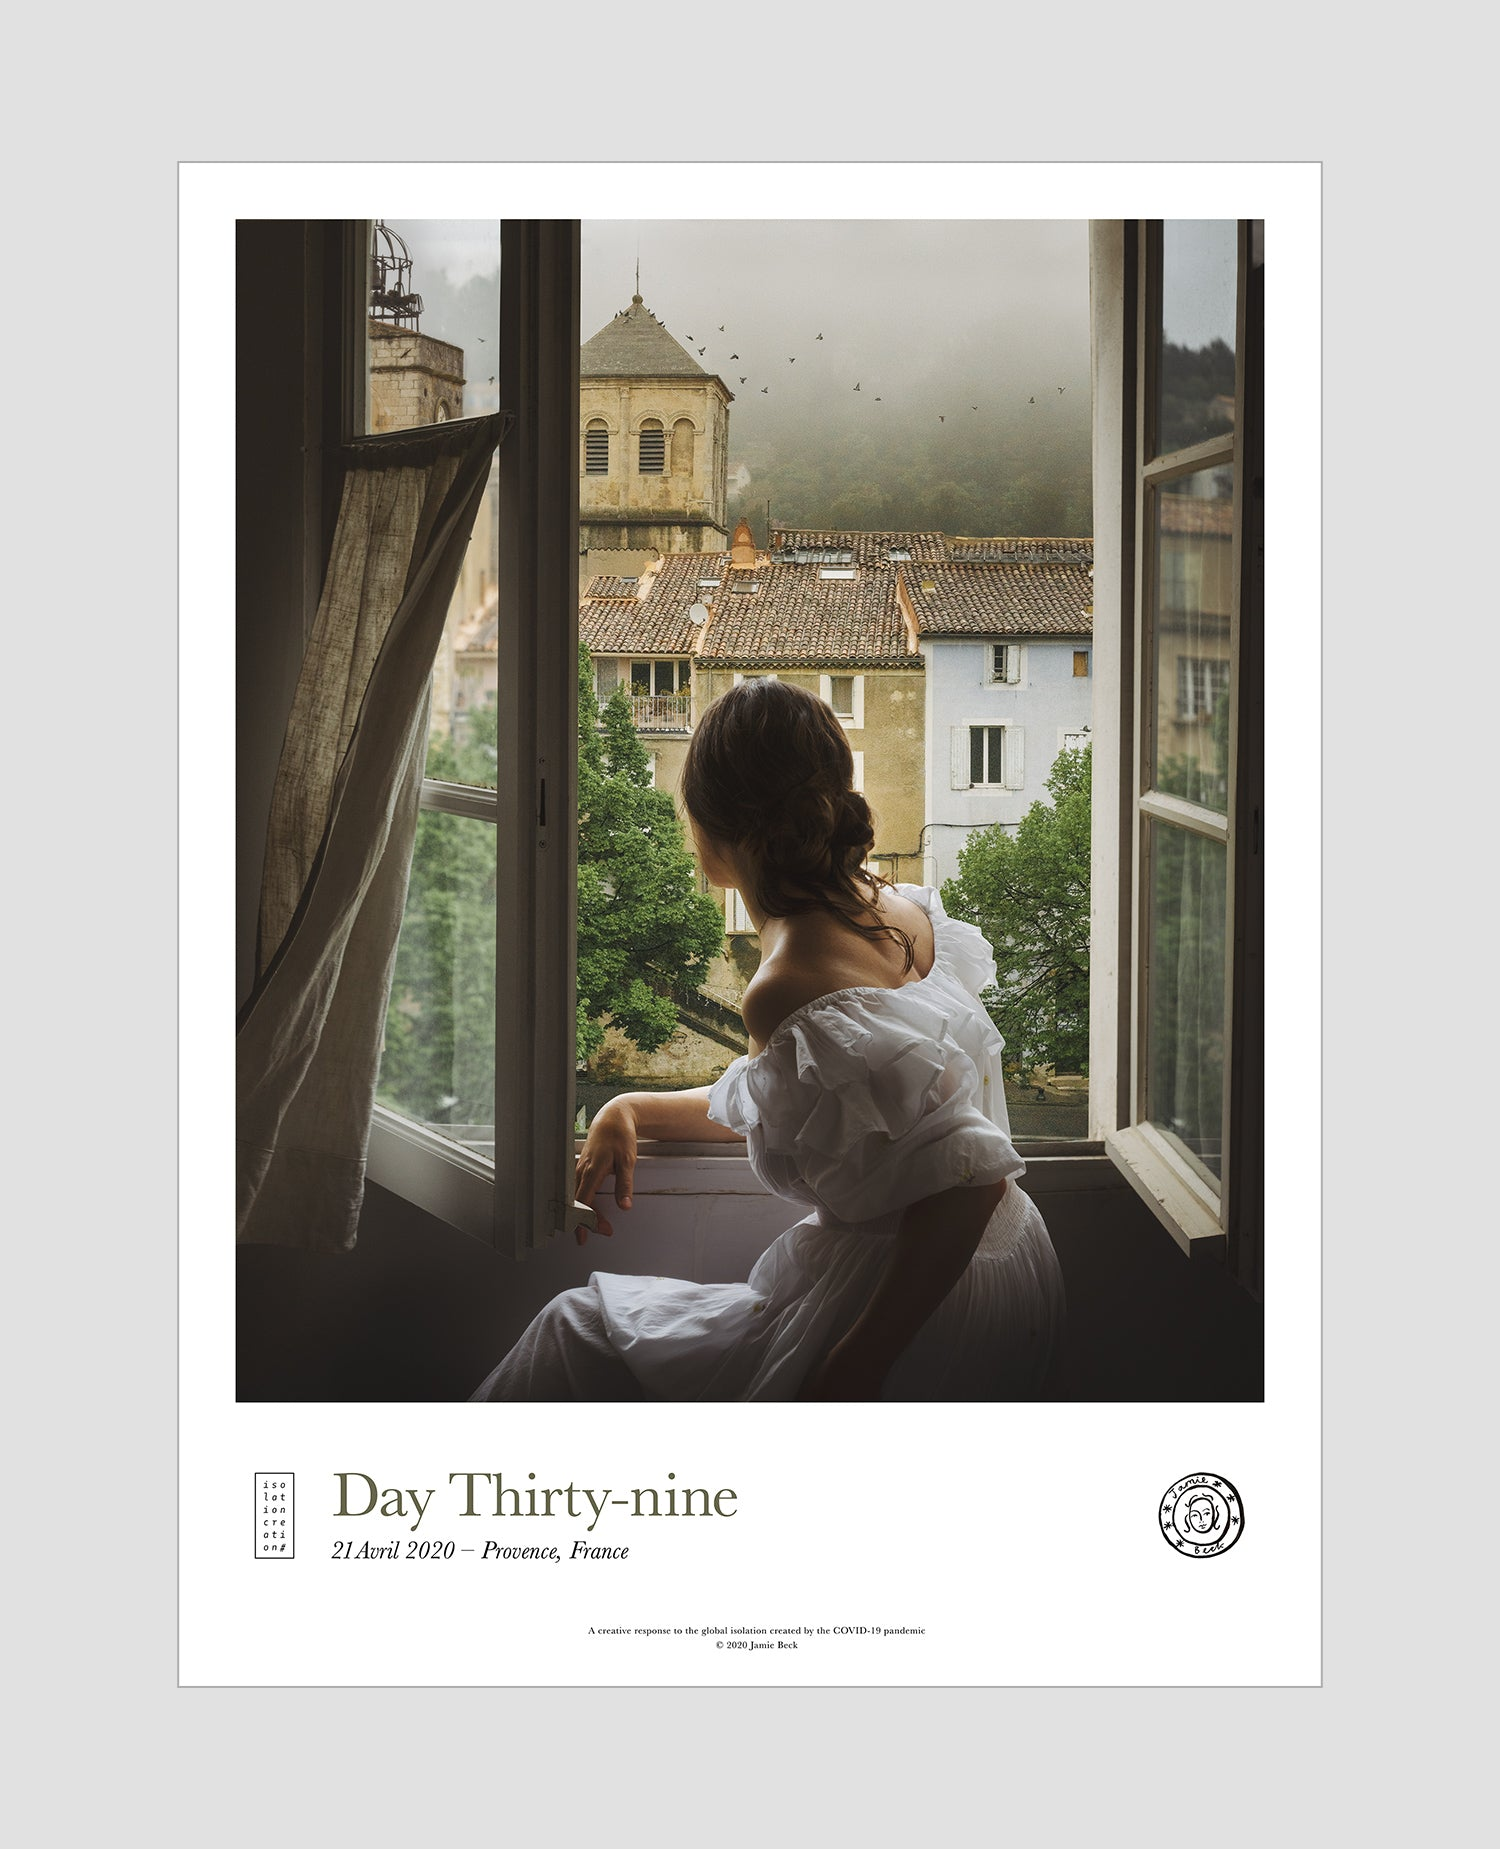 Day Thirty-nine Poster